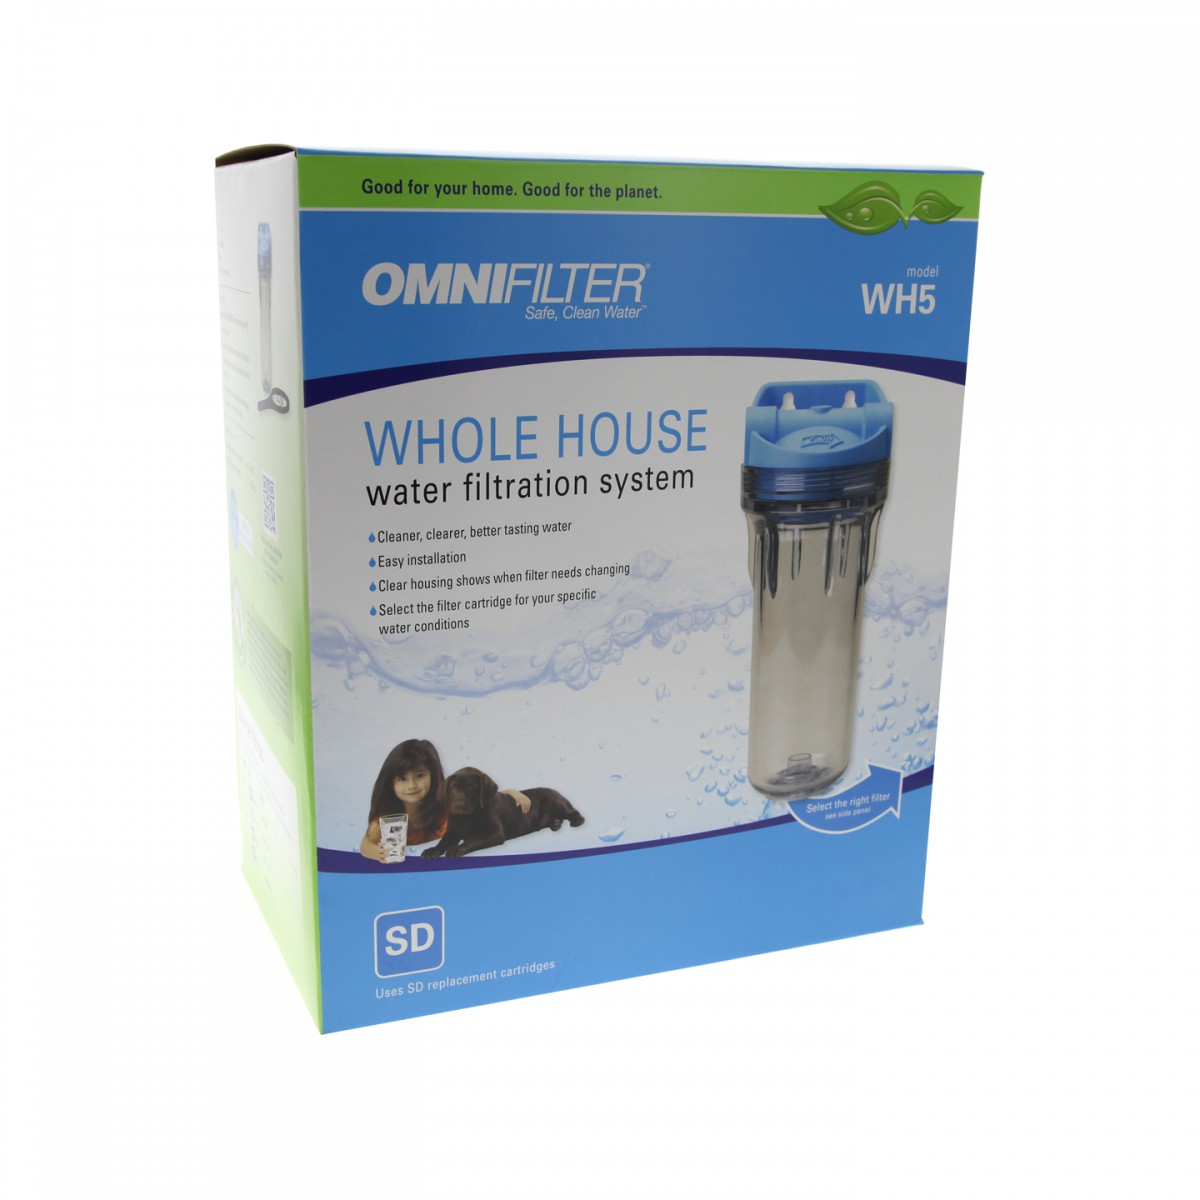 Ob5 S 05 Omnifilter Whole House Water Filter